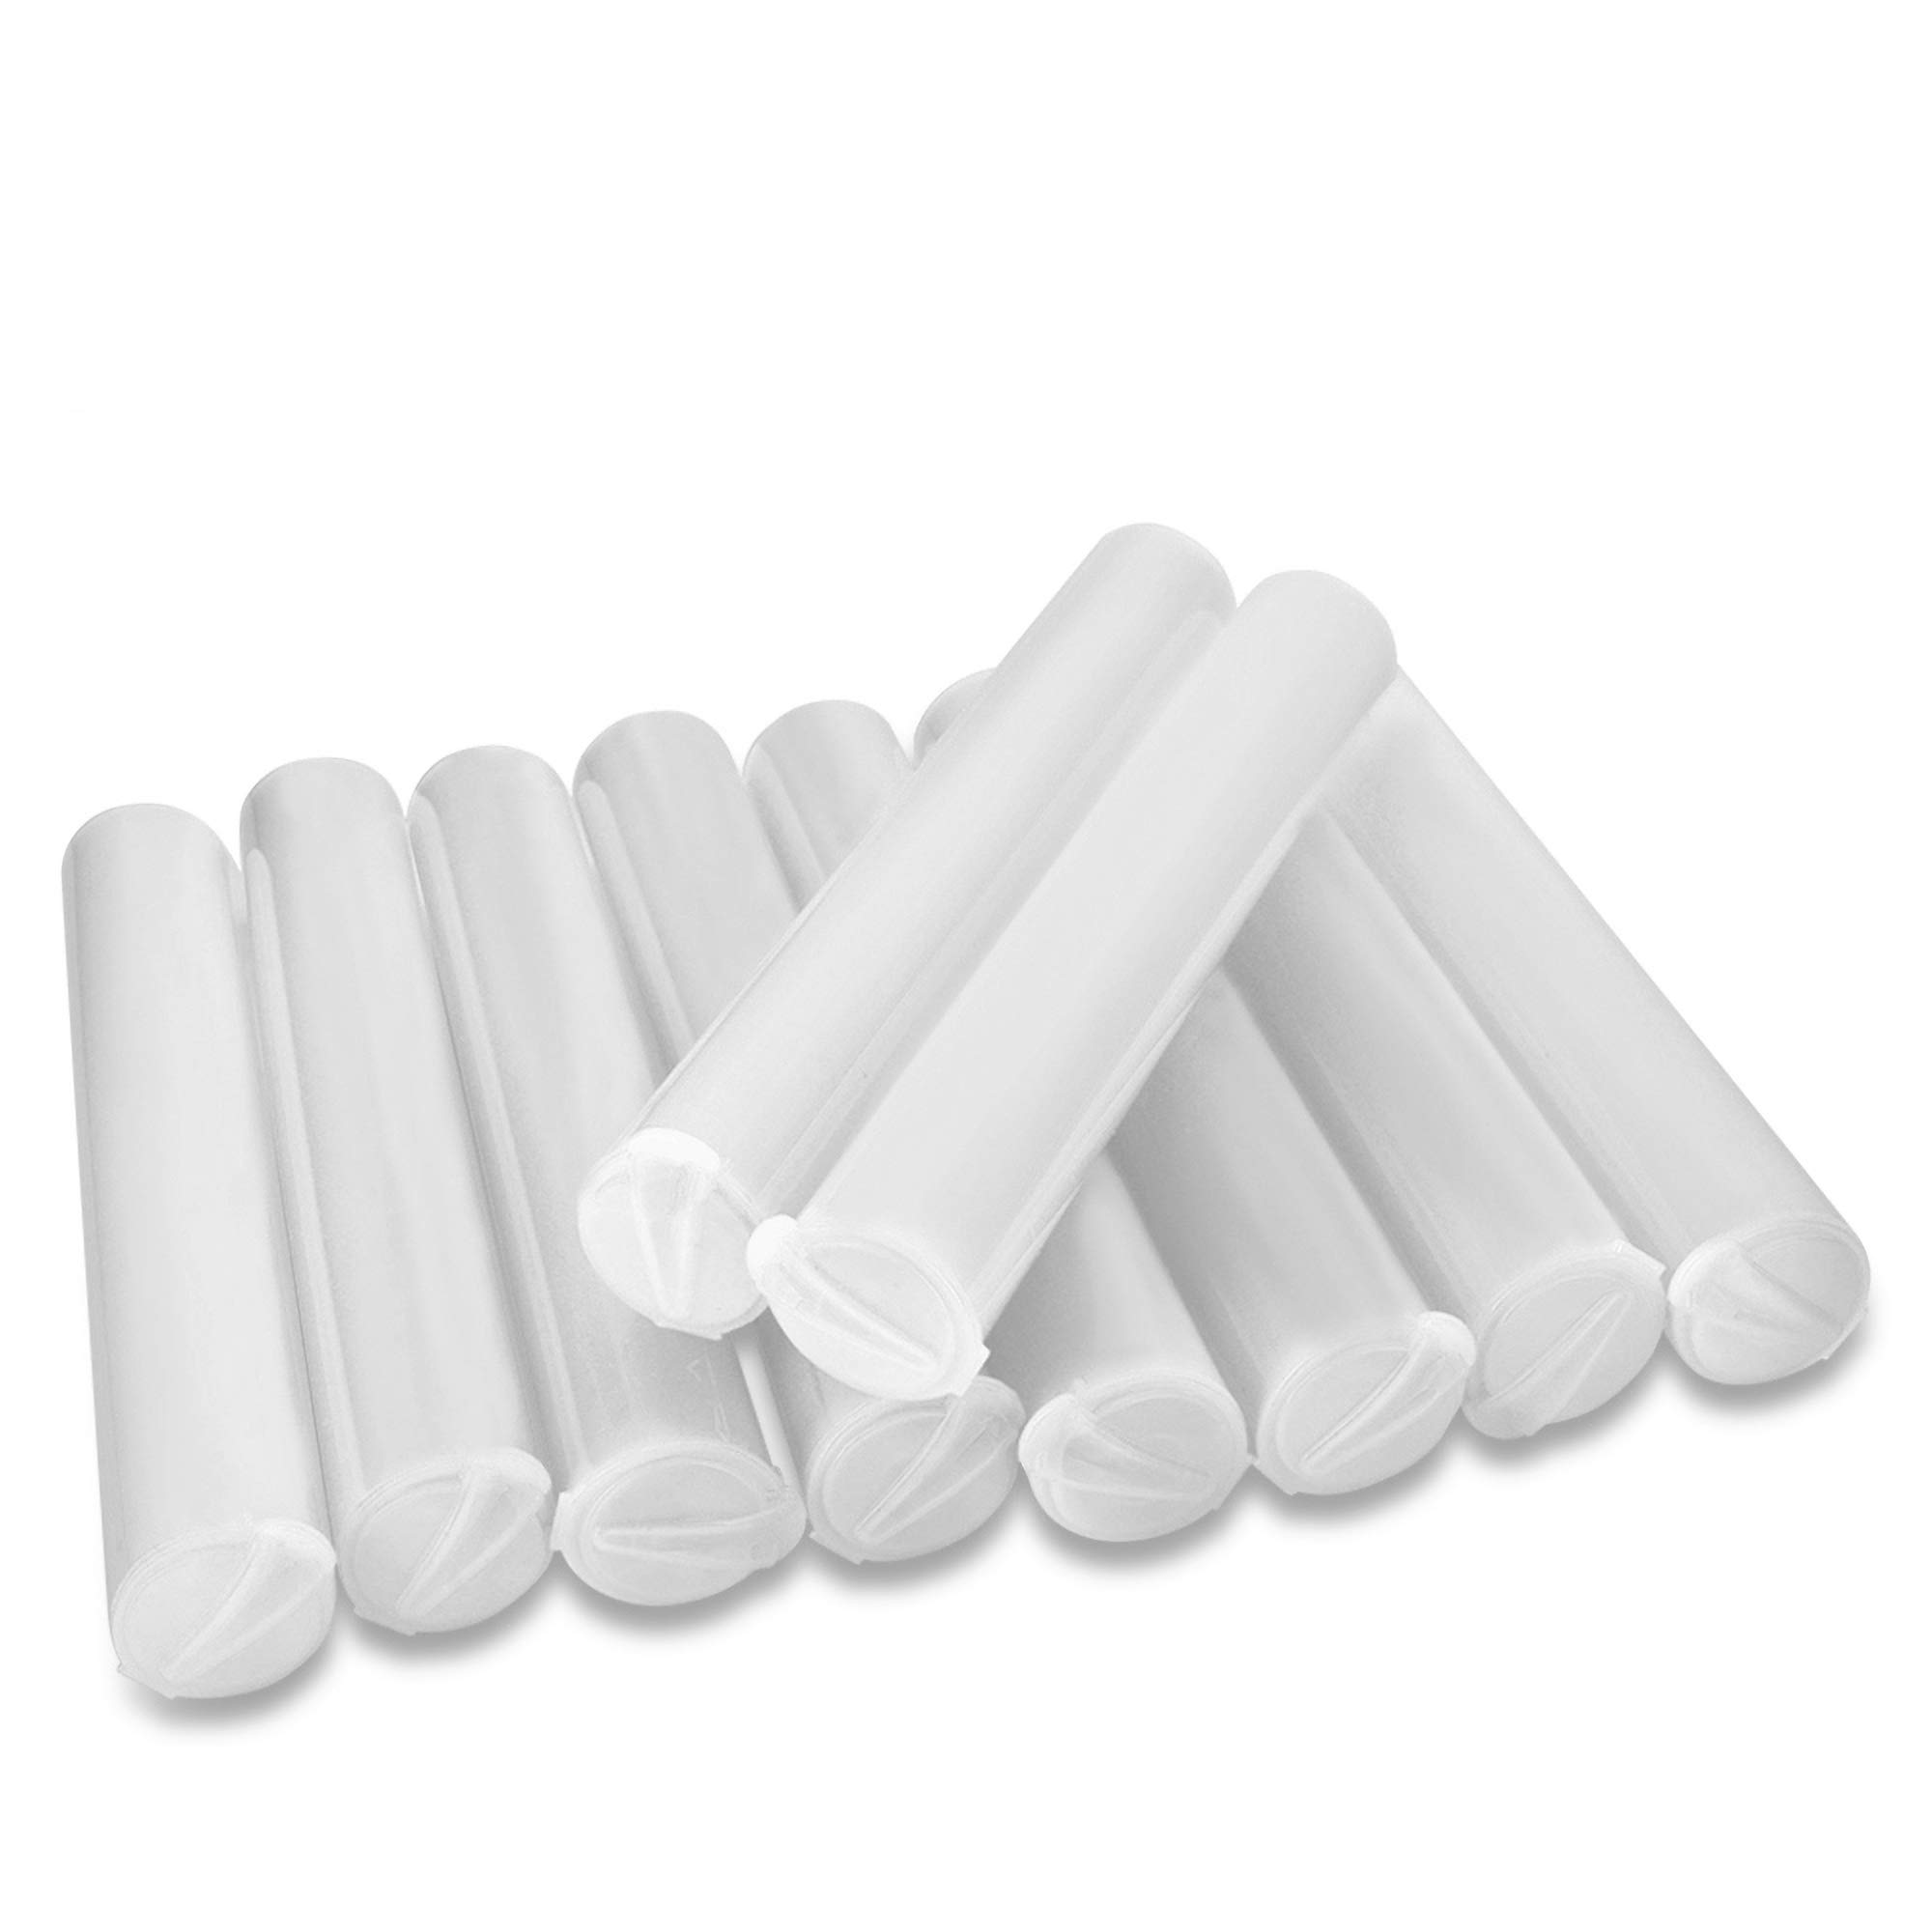 MM SUPPLIES 600 PACK -116MM OPAQUE WHITE BLUNT TUBES |Cone Tubes |King Size Blunt Tube Also Fits Joints |Best QUALITY Wholesale Cone Tubes Bulk, Airtight, Push or Pop by MM SUPPLIES